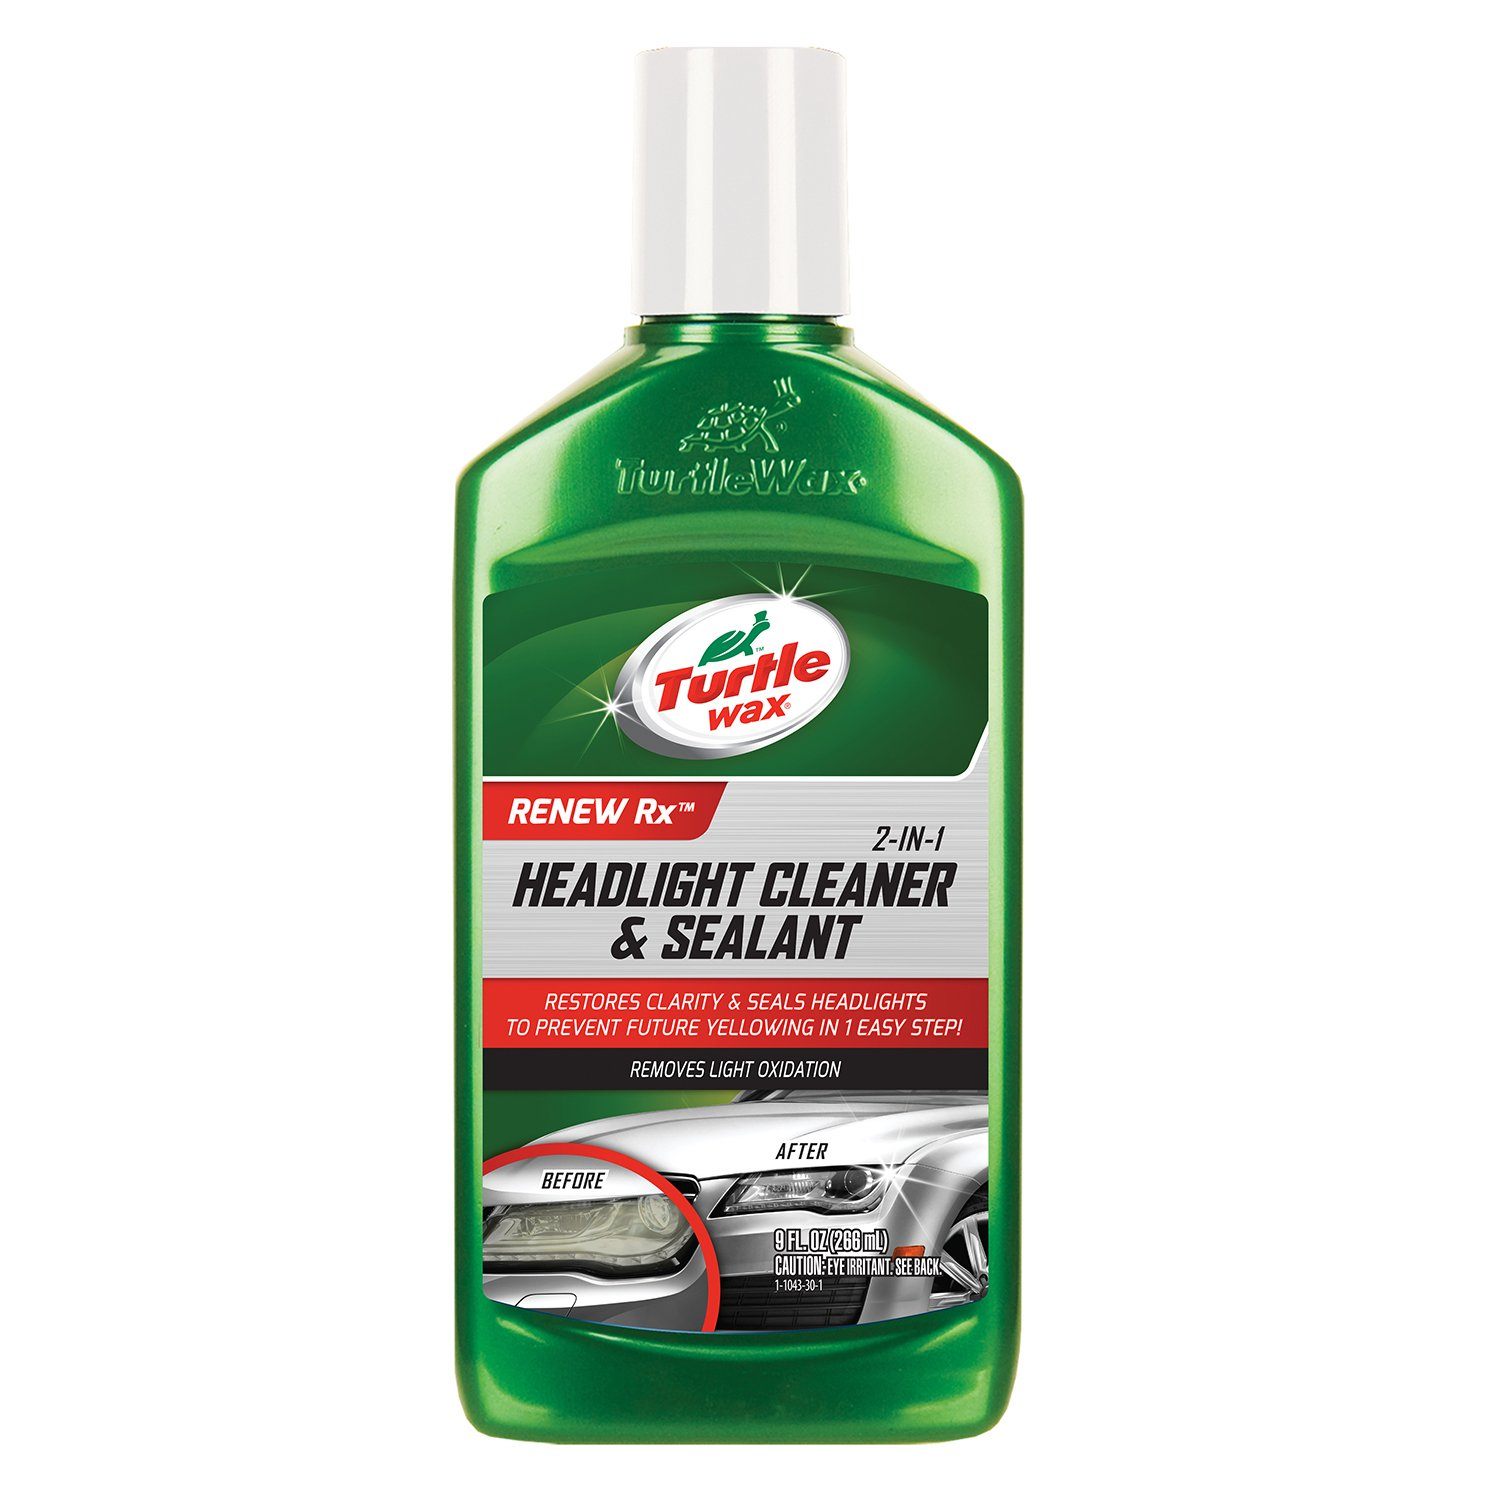 Turtle Wax T-43 (2-in-1) Headlight Cleaner and Sealant - 9 oz. T43